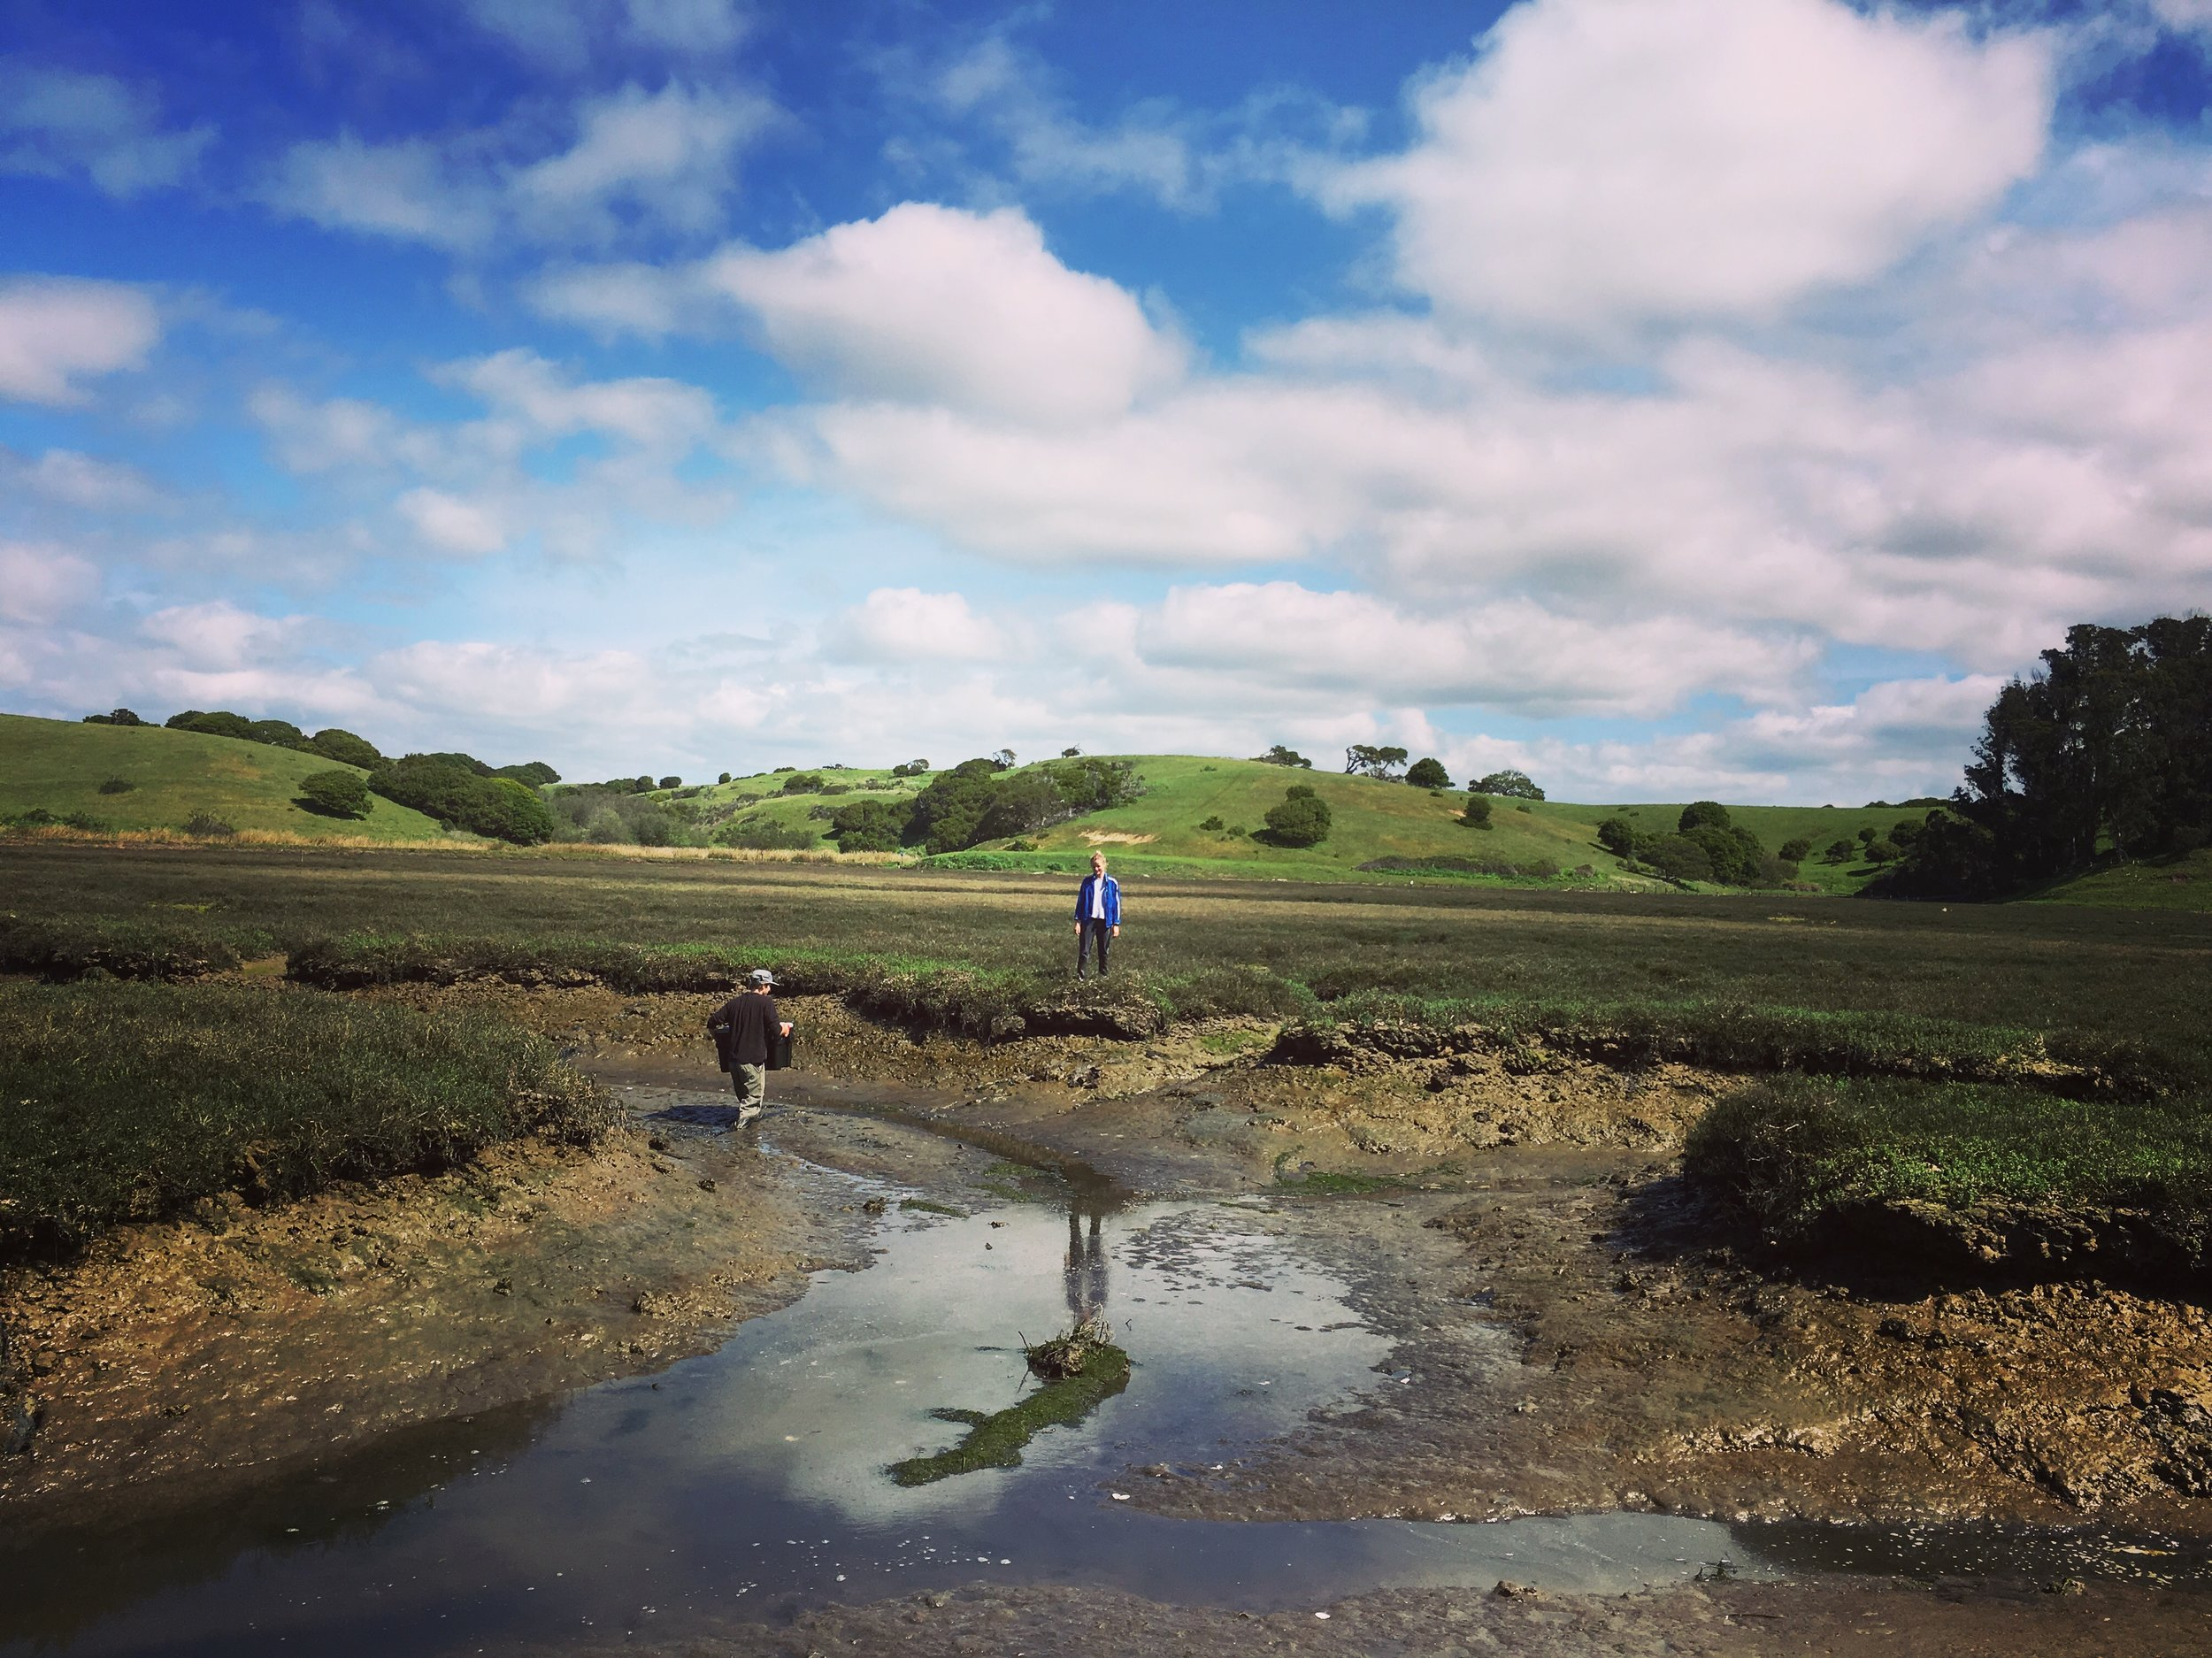 Elkhorn slough salt marshes at low tide is a site to be seen. No longer accessible by boat you have to get creative moving field gear, grab some boots or waders and trudge through the slough. The slower you go the more you sink, light quick feet for the win. #justsloughit #justsinkit #muddydays